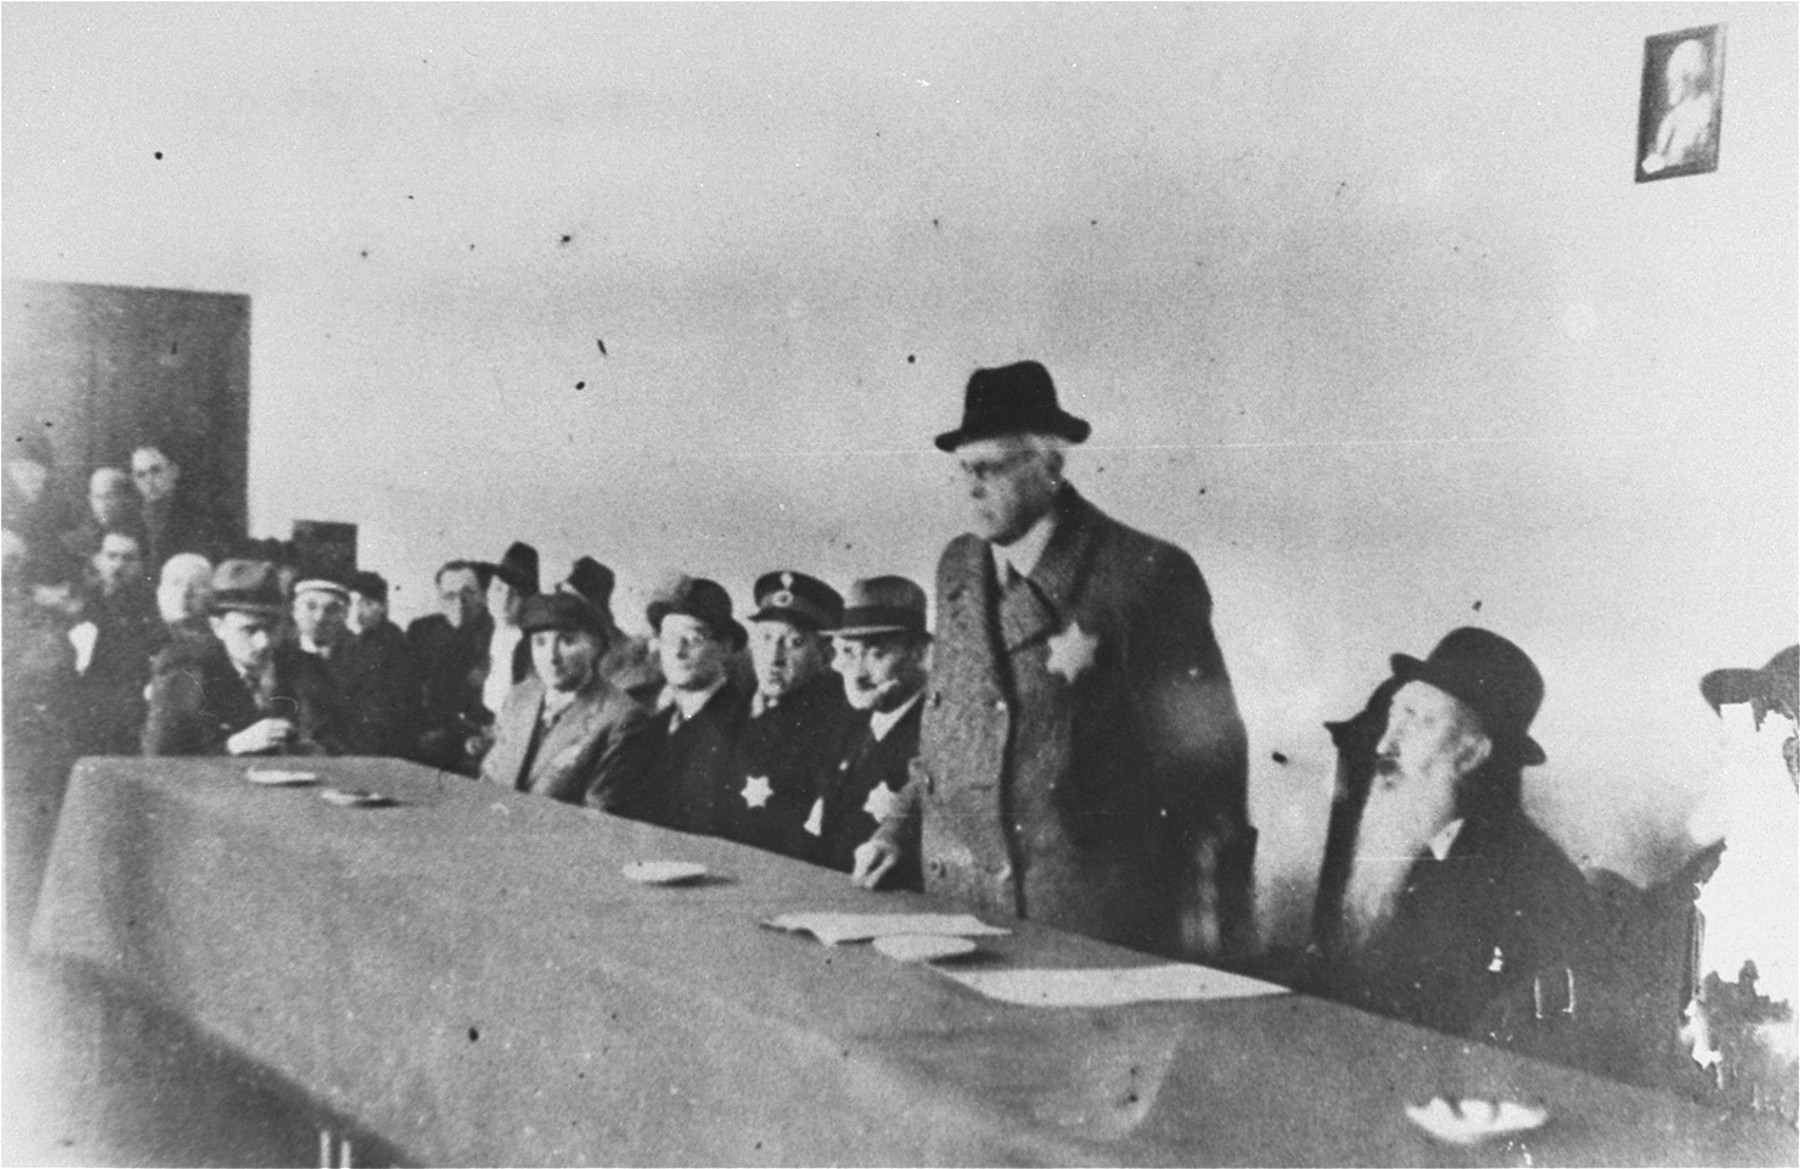 Mordechai Chaim Rumkowski delivers a speech at a meeting of Lodz ghetto officials.    Among those pictured are: Rabbi Josif Fajner (second from the right), Dr. Leon Szykier (fifth from the right, wearing a uniform cap).